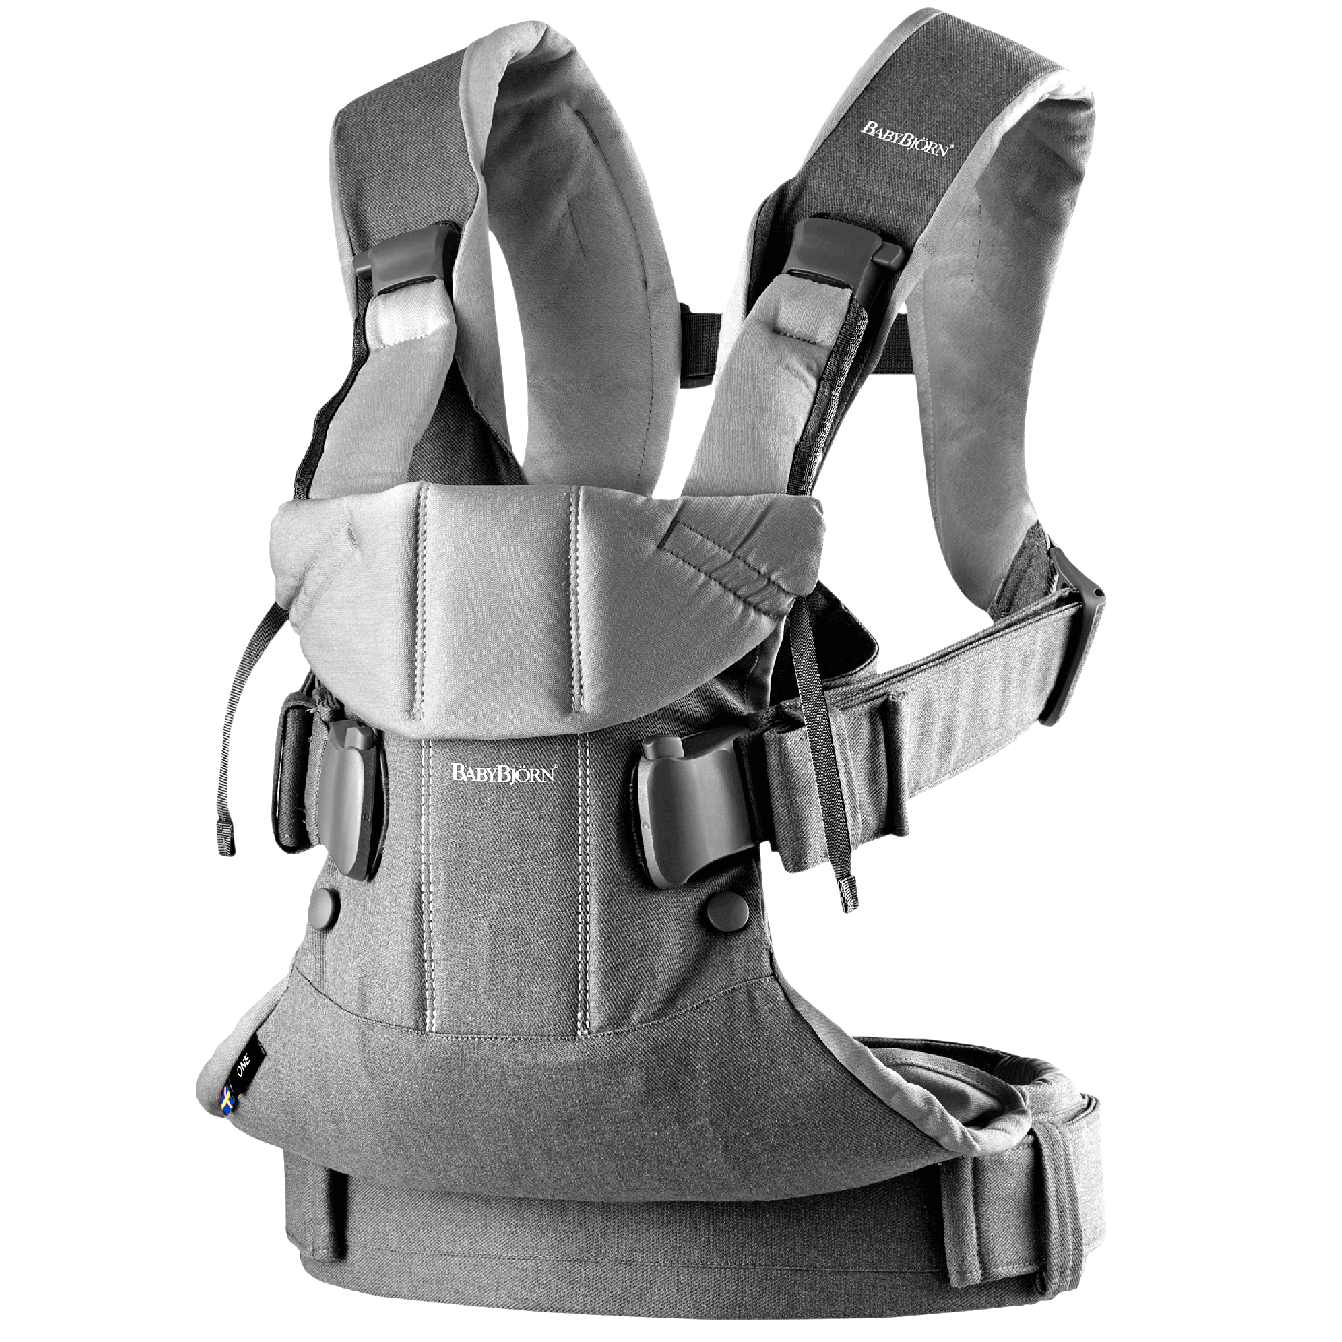 Baby Carrier One Denim Gray/Dark Gray Cotton Mix-098094-BABYBJÖRN-startpage-1342